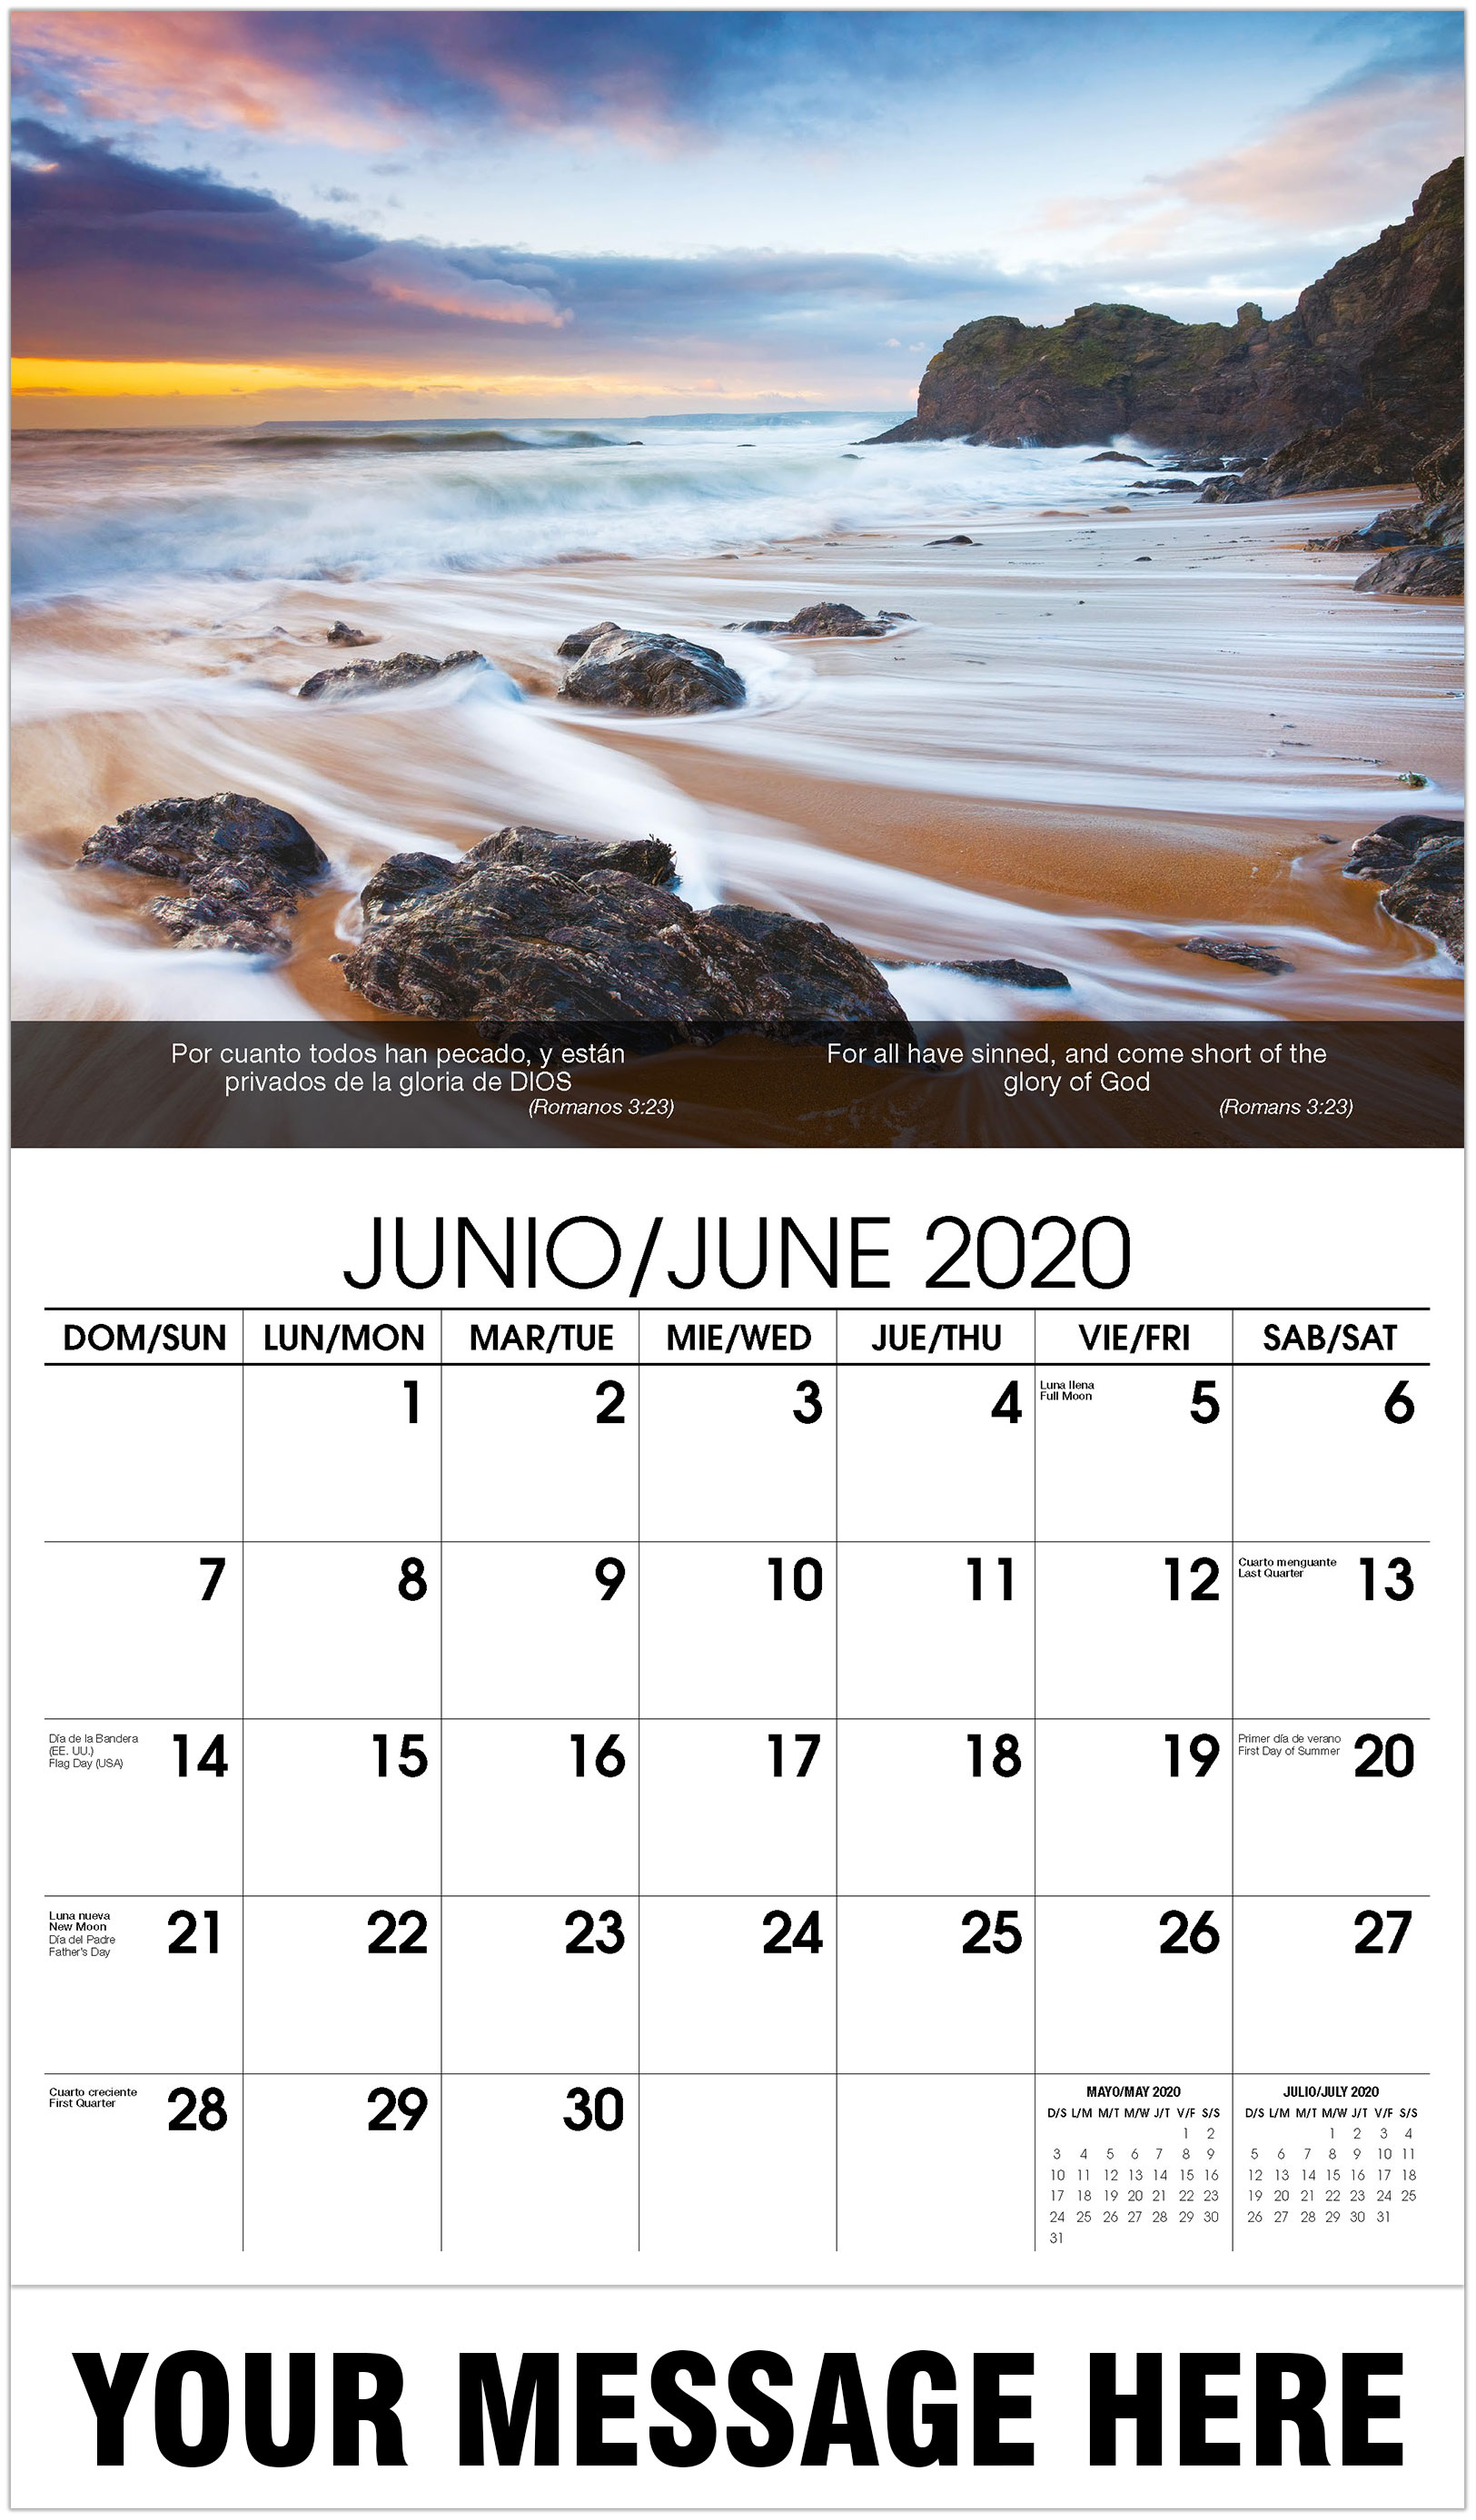 2020 Bilingual Promotional Calendar - Waves On Beach At Sunset - June